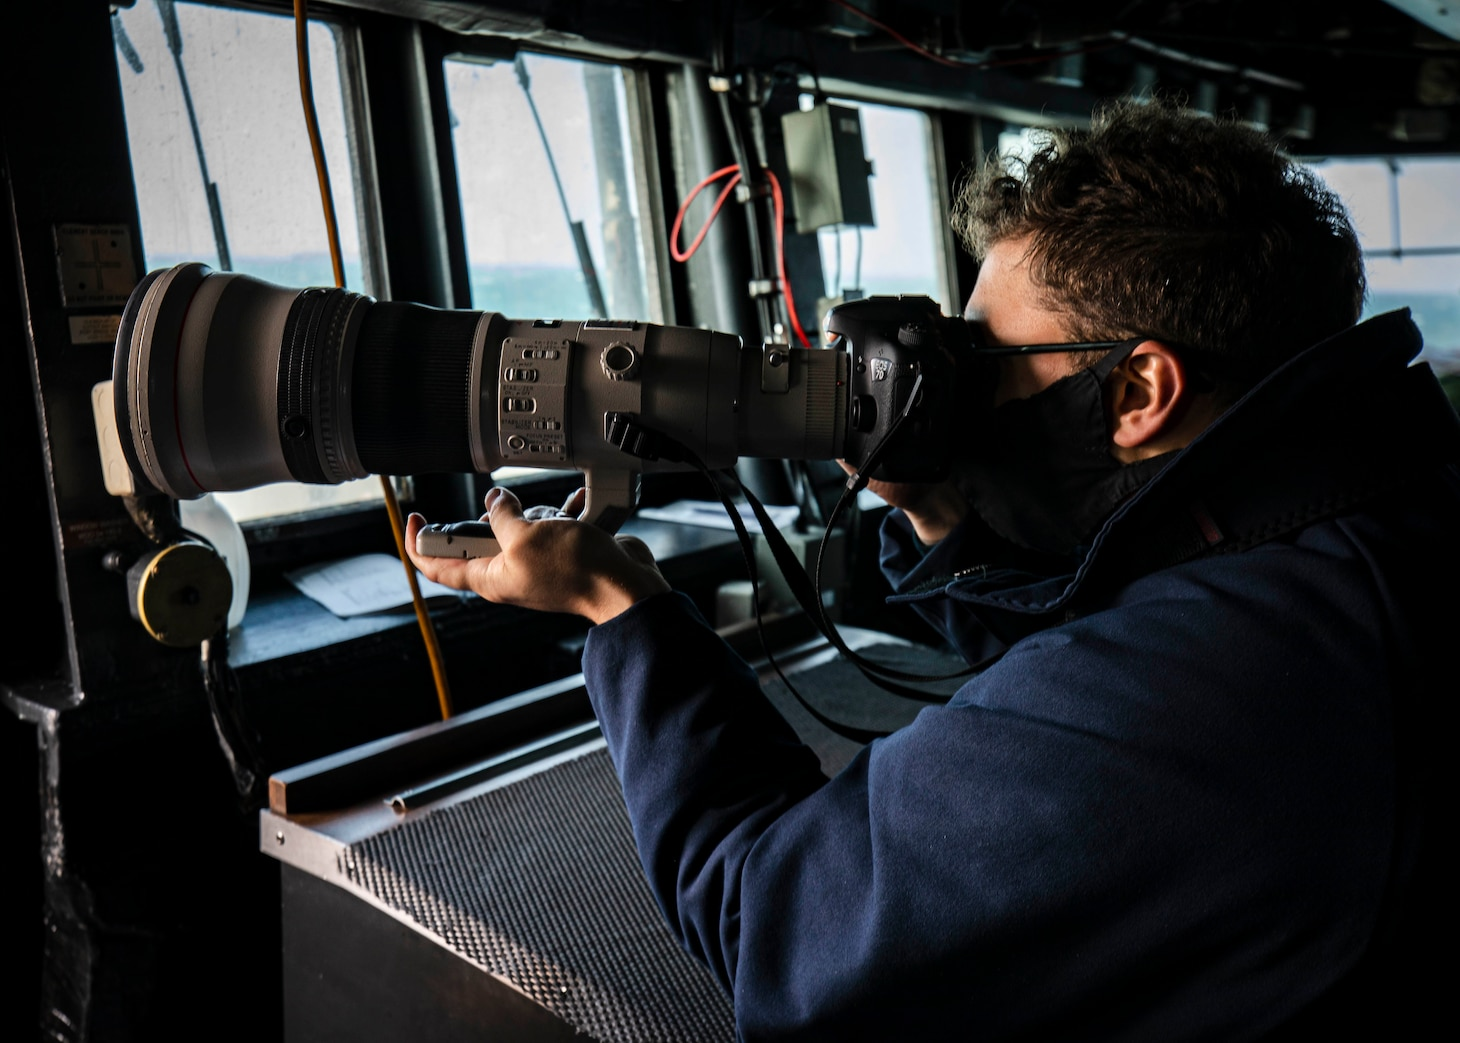 TAIWAN STRAIT (Dec. 30, 2020) Ensign Grayson Sigler, from Corpus Christi, Texas, scans the horizon while standing watch in the pilot house as guided-missile destroyer USS John S. McCain (DDG 56) conducts routine underway operations in support of stability and security for a free and open Indo-Pacific. Sea control is foundational for all other naval missions that support the Joint Force, including power projection.